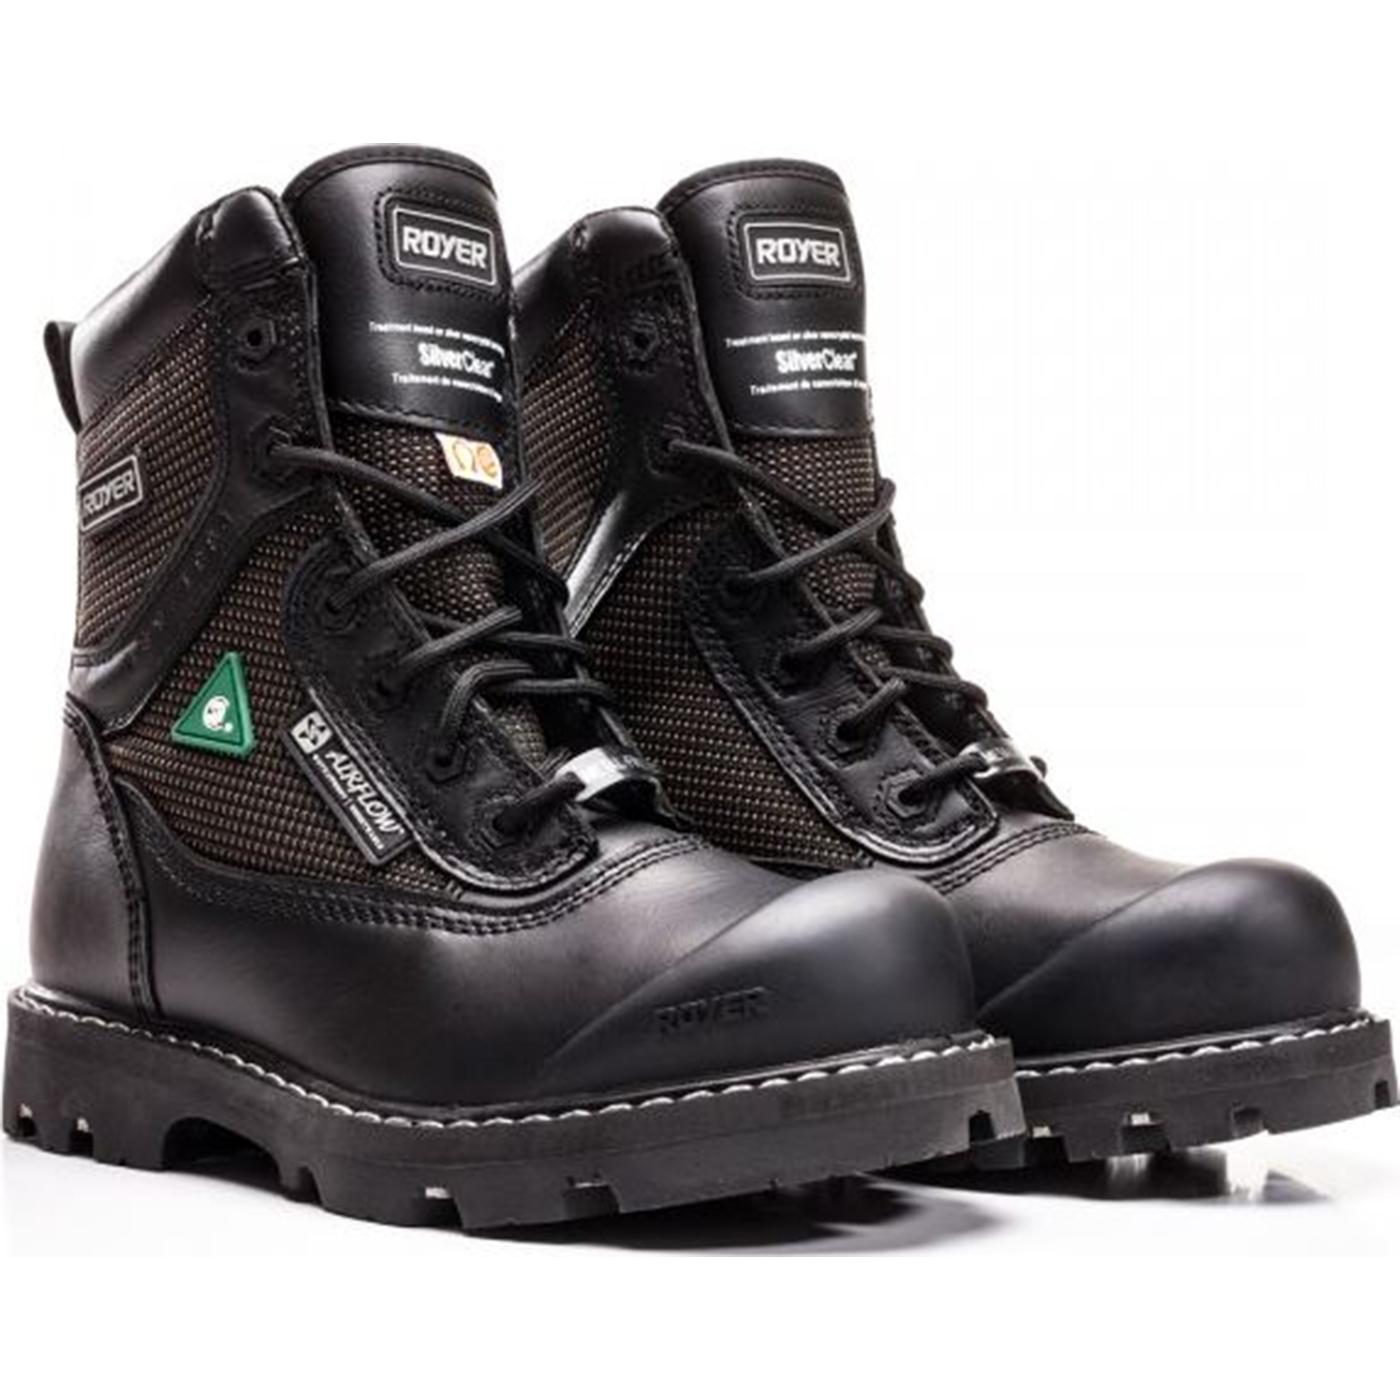 c039b8b1ab2 Royer Composite Toe CSA-Approved Puncture-Resistant Waterproof Work Boot